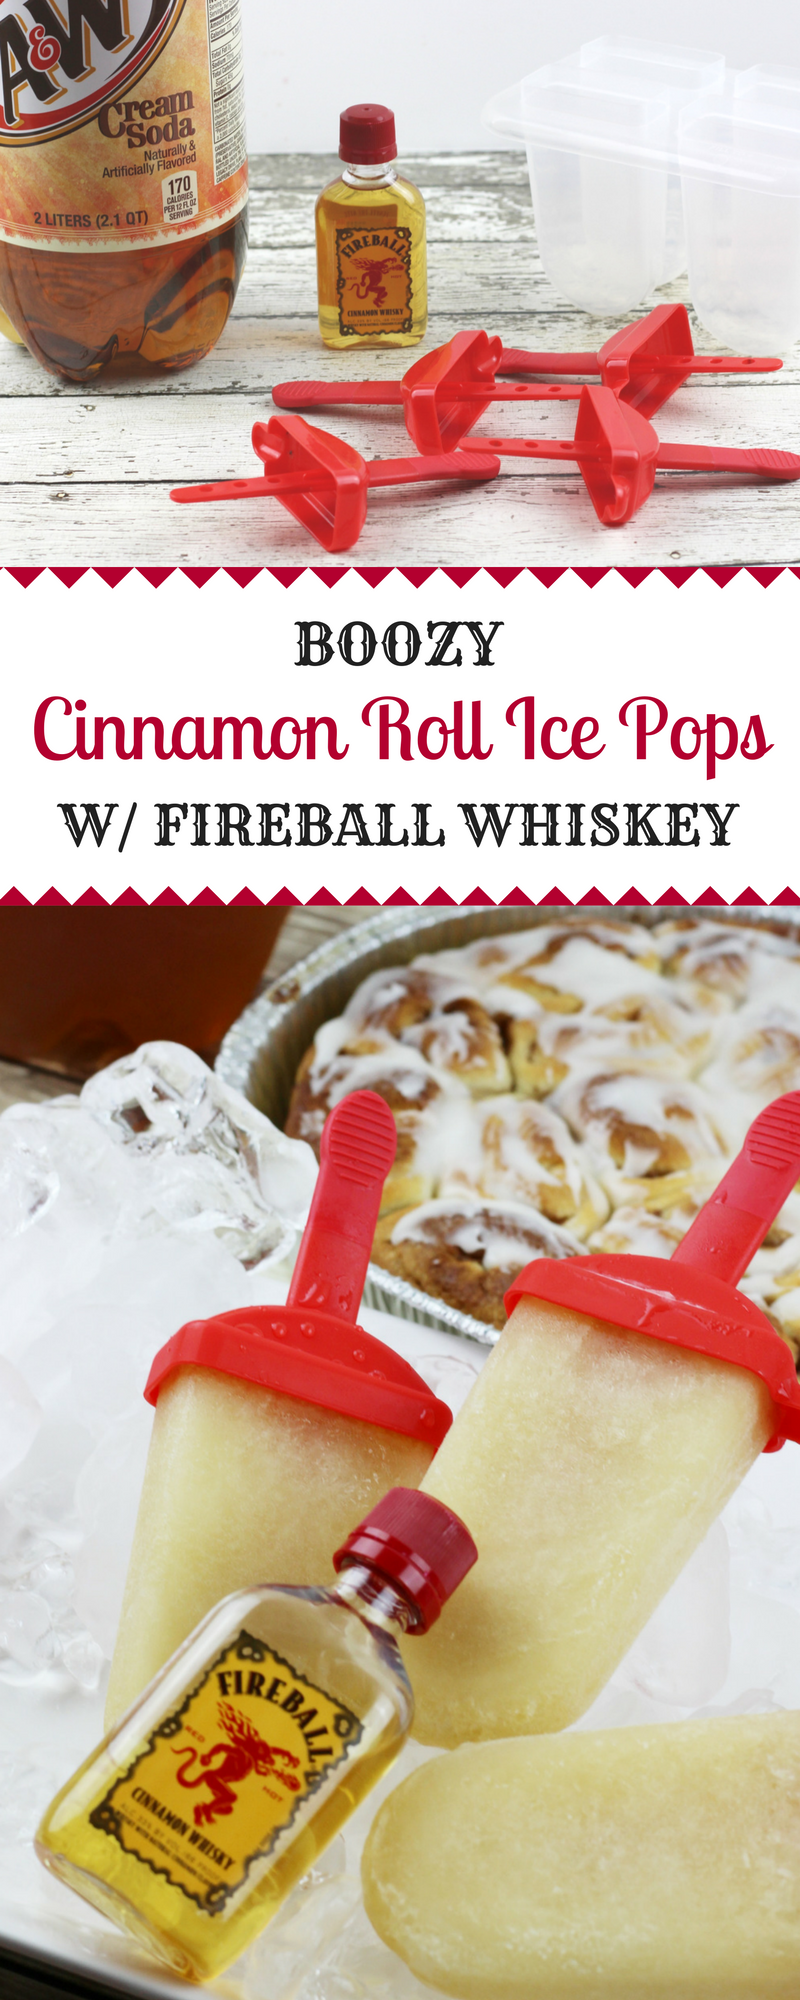 Inspired by the cinnamon roll cocktail these delicious cinnamon inspired by the cinnamon roll cocktail these delicious cinnamon roll ice pops are made with forumfinder Image collections